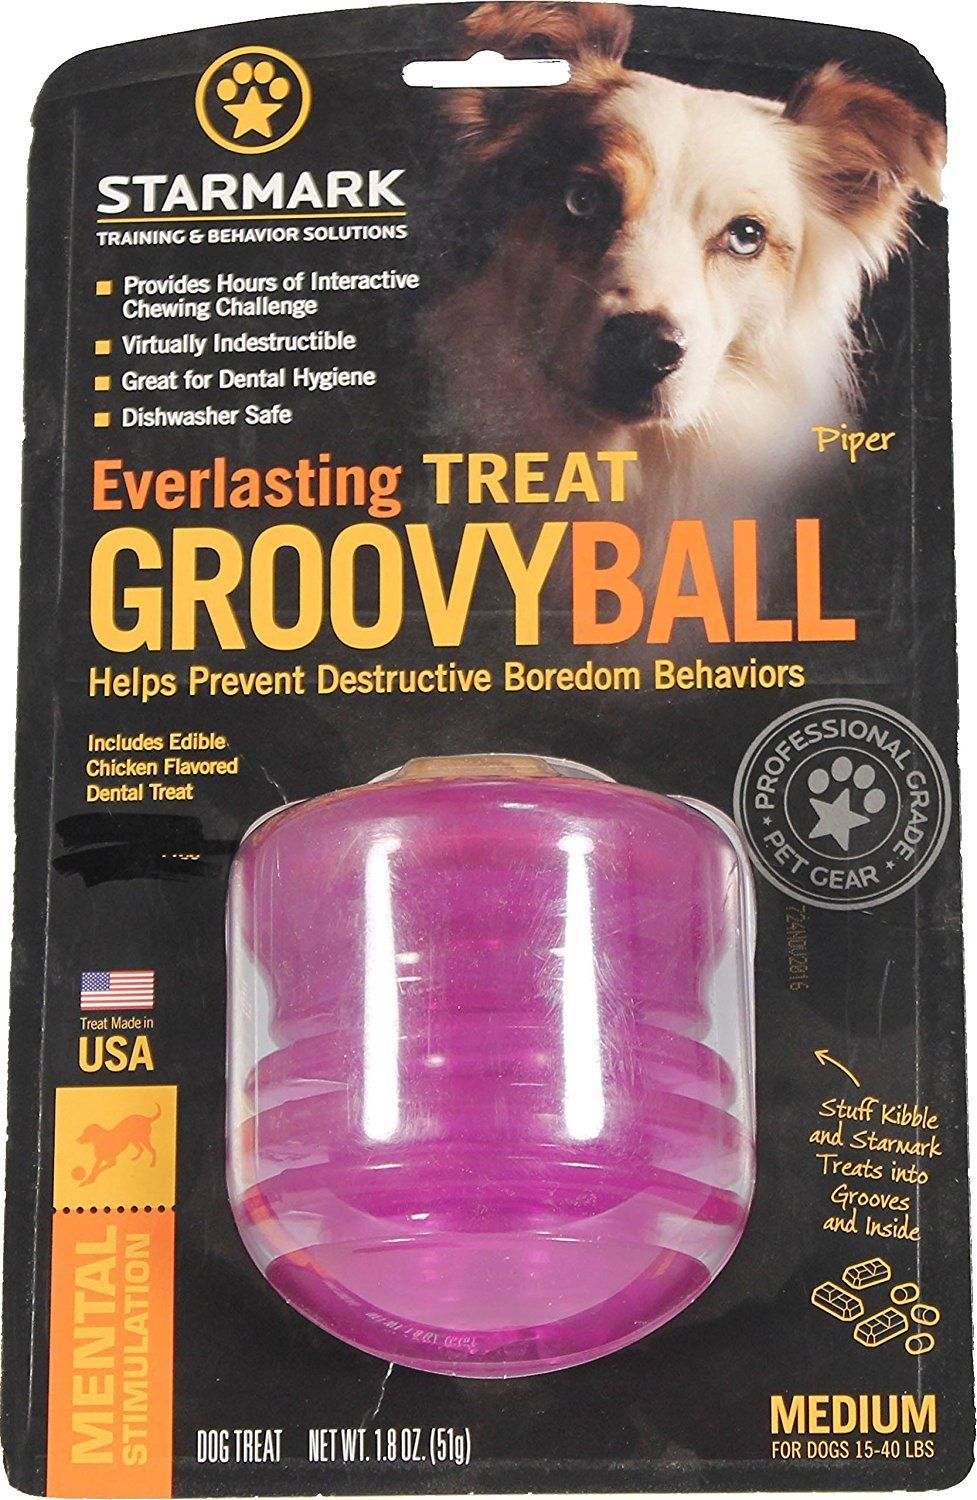 Starmark Smgbpm Dog Everlasting Treat Groovy Ball Dog Diapers